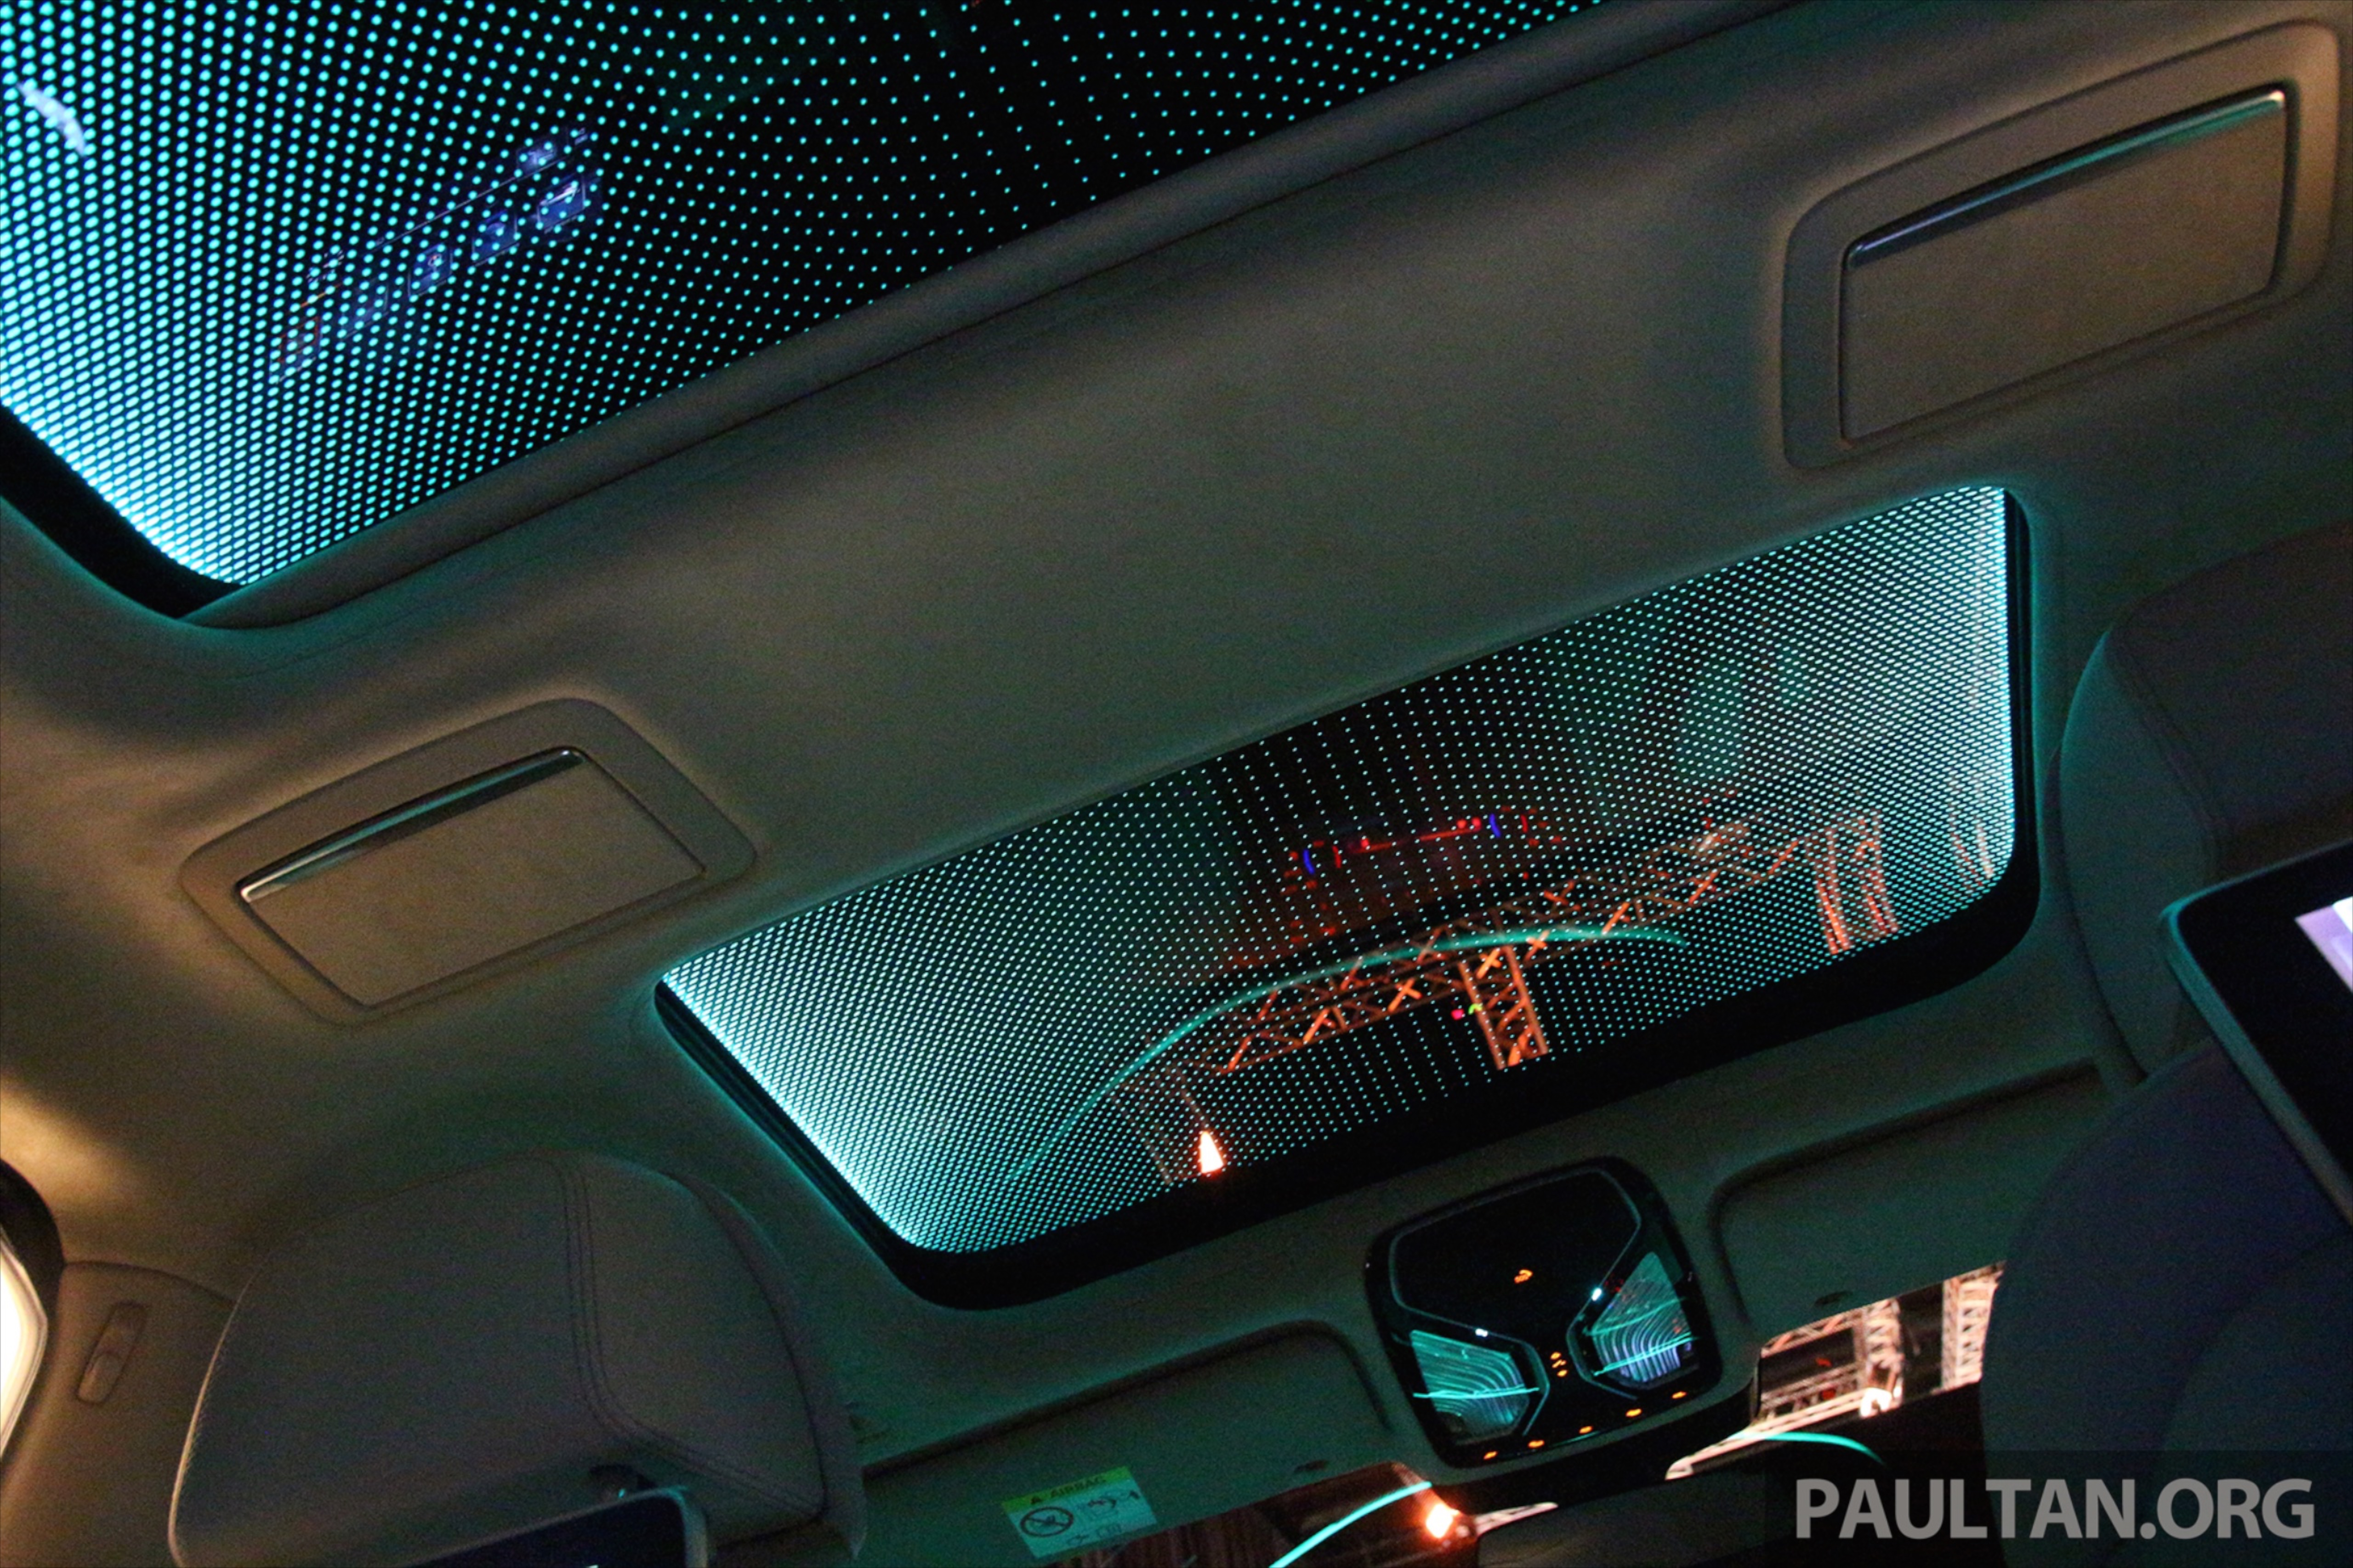 Gallery Bmw 7 Series Sky Lounge Panoramic Roof Image 436557 HD Wallpapers Download free images and photos [musssic.tk]